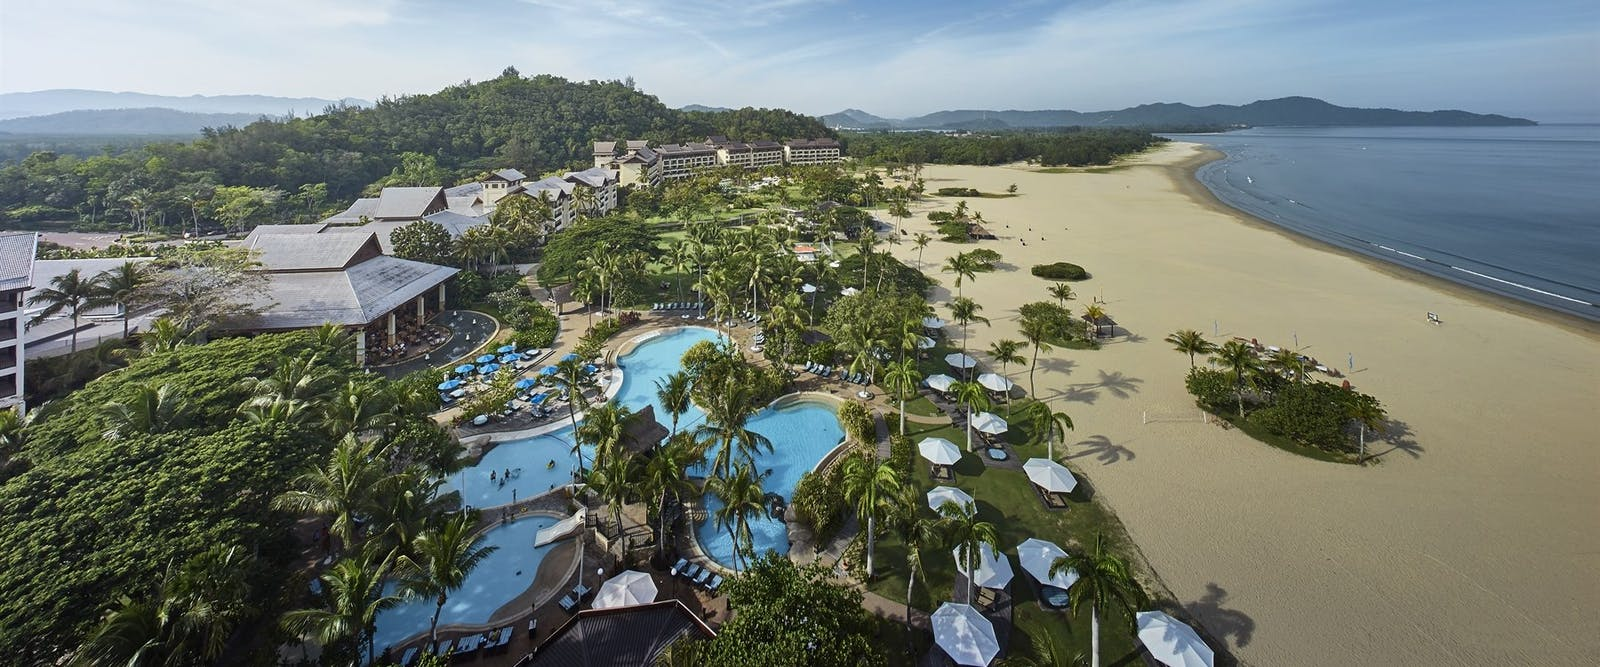 Aerial view of Shangri La Rasa Ria Resort, Borneo